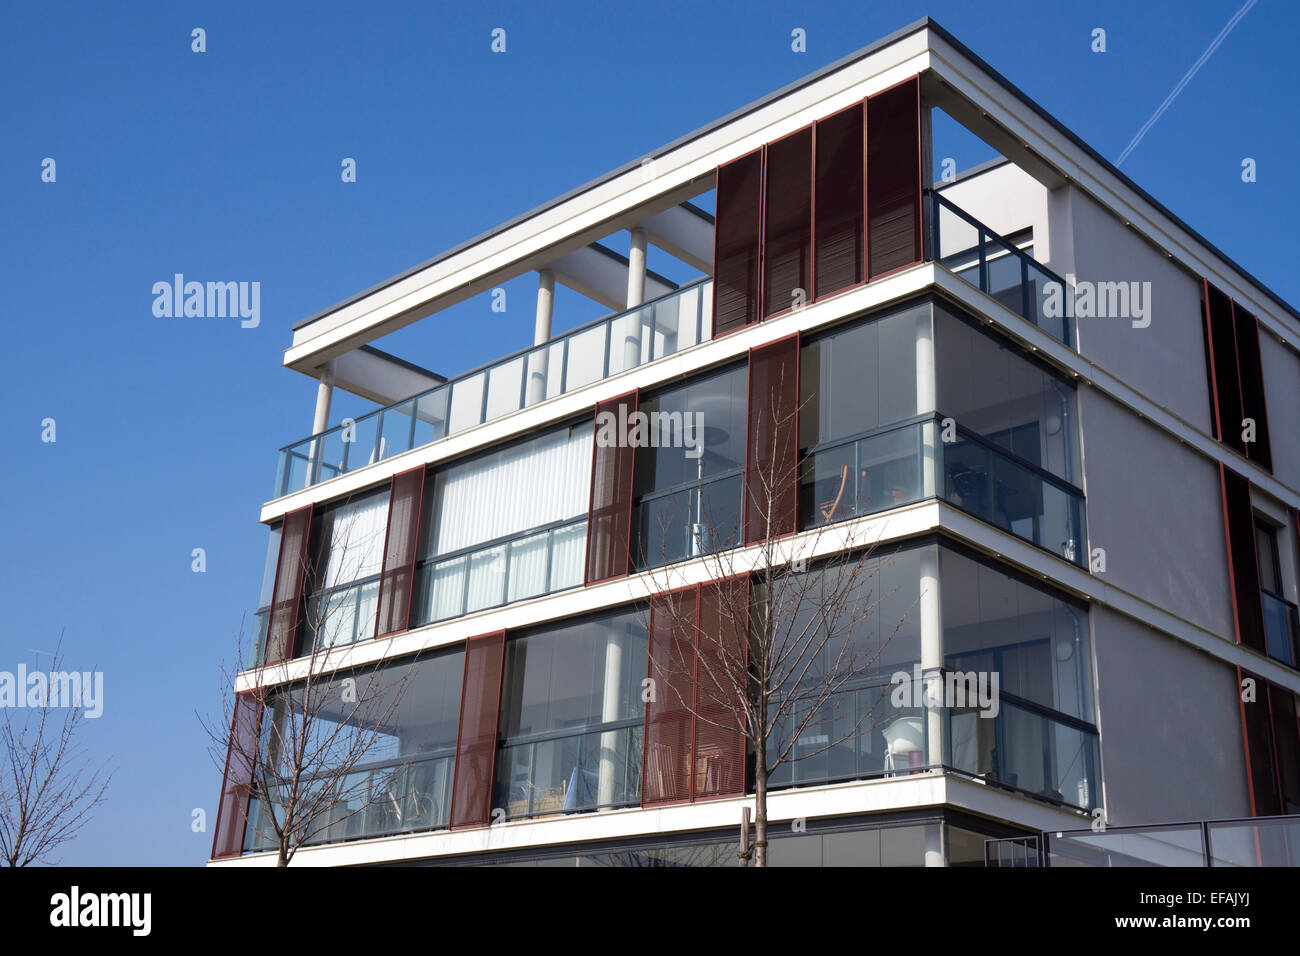 Modern Architecture Europe multi-family house, modern architecture in the bauhaus style stock